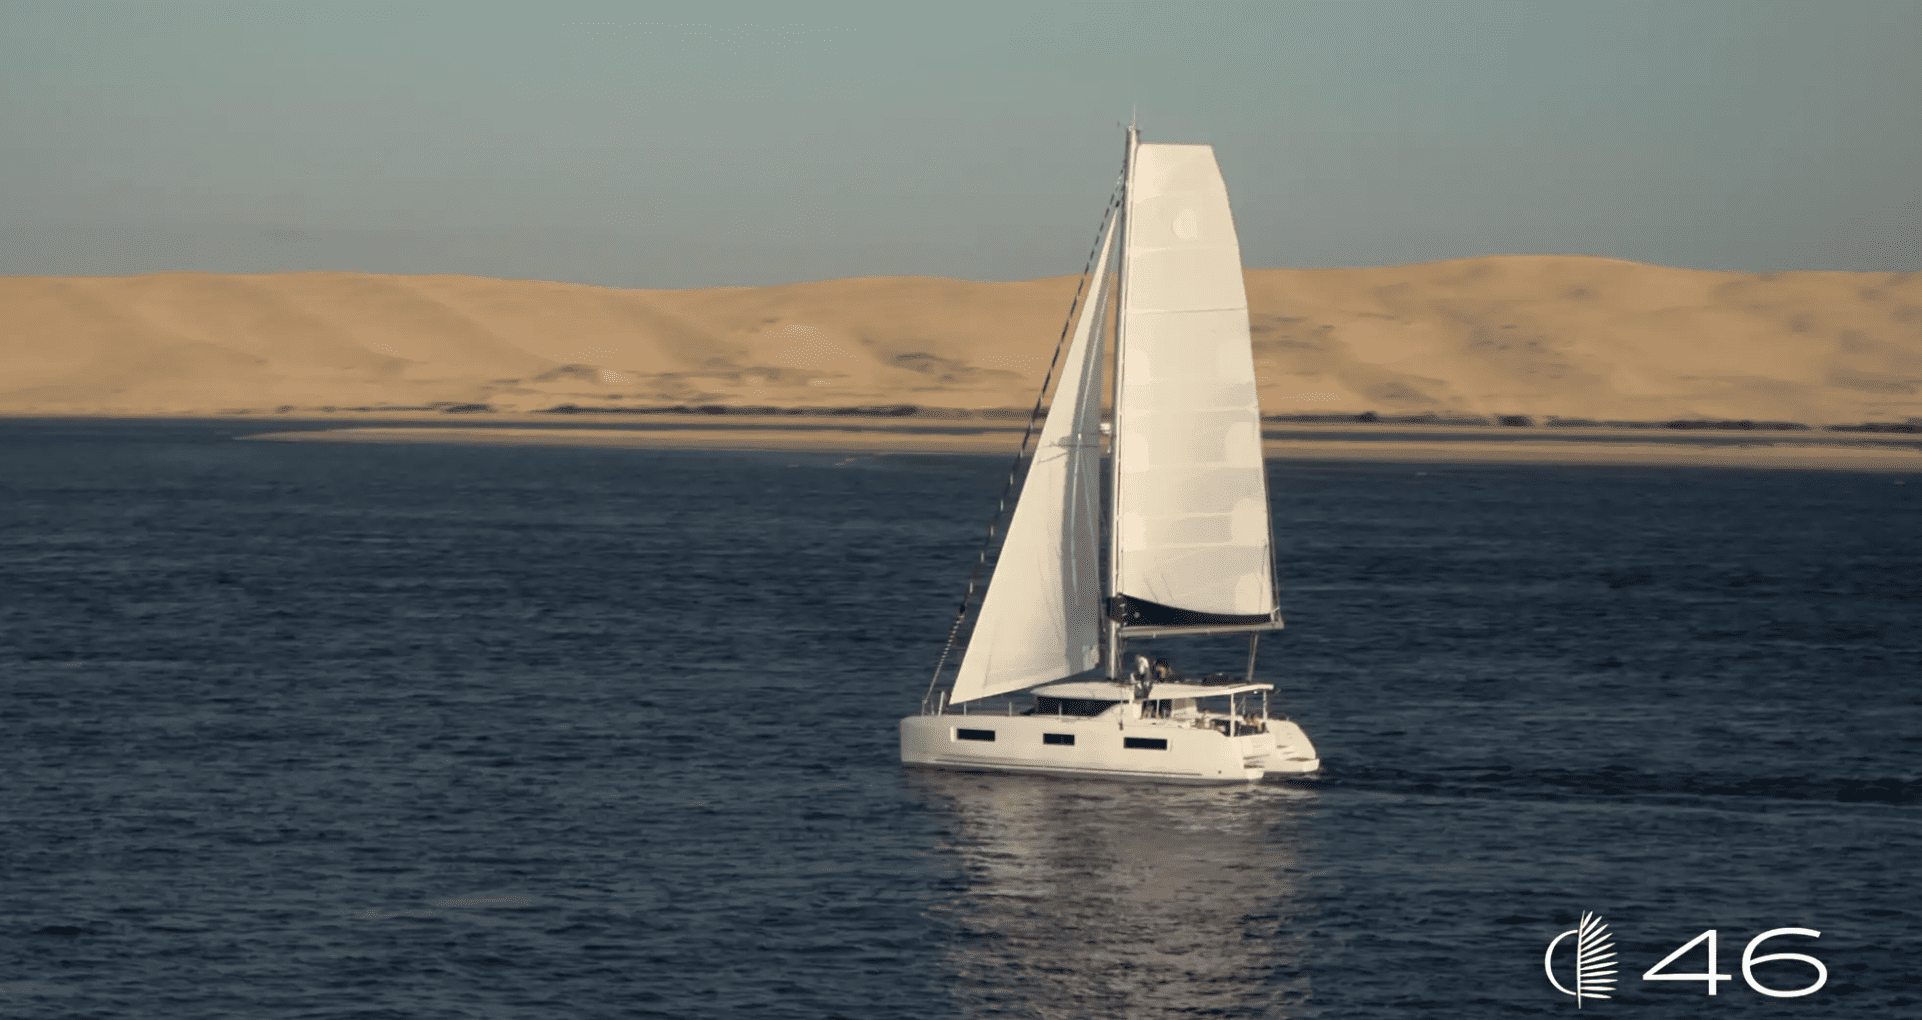 Are you getting excited about the Lagoon 46?